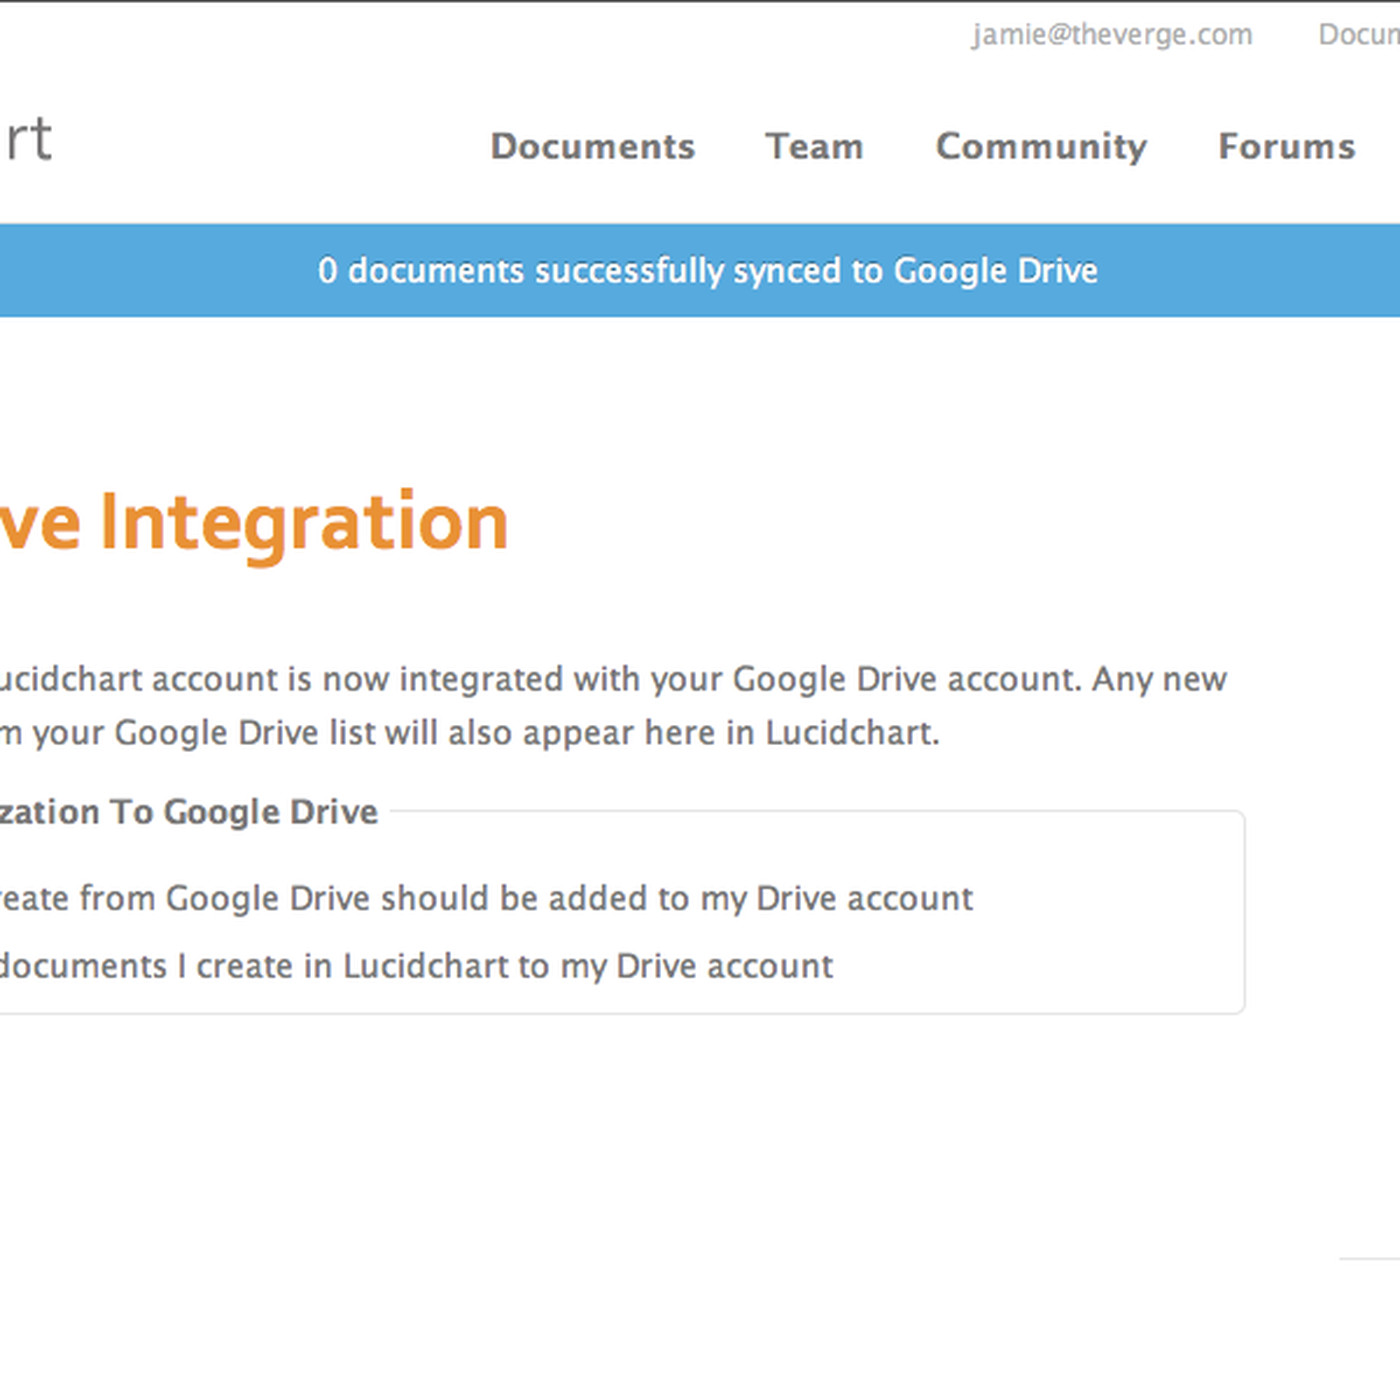 Google Drive integration leaked by Lucidchart - The Verge